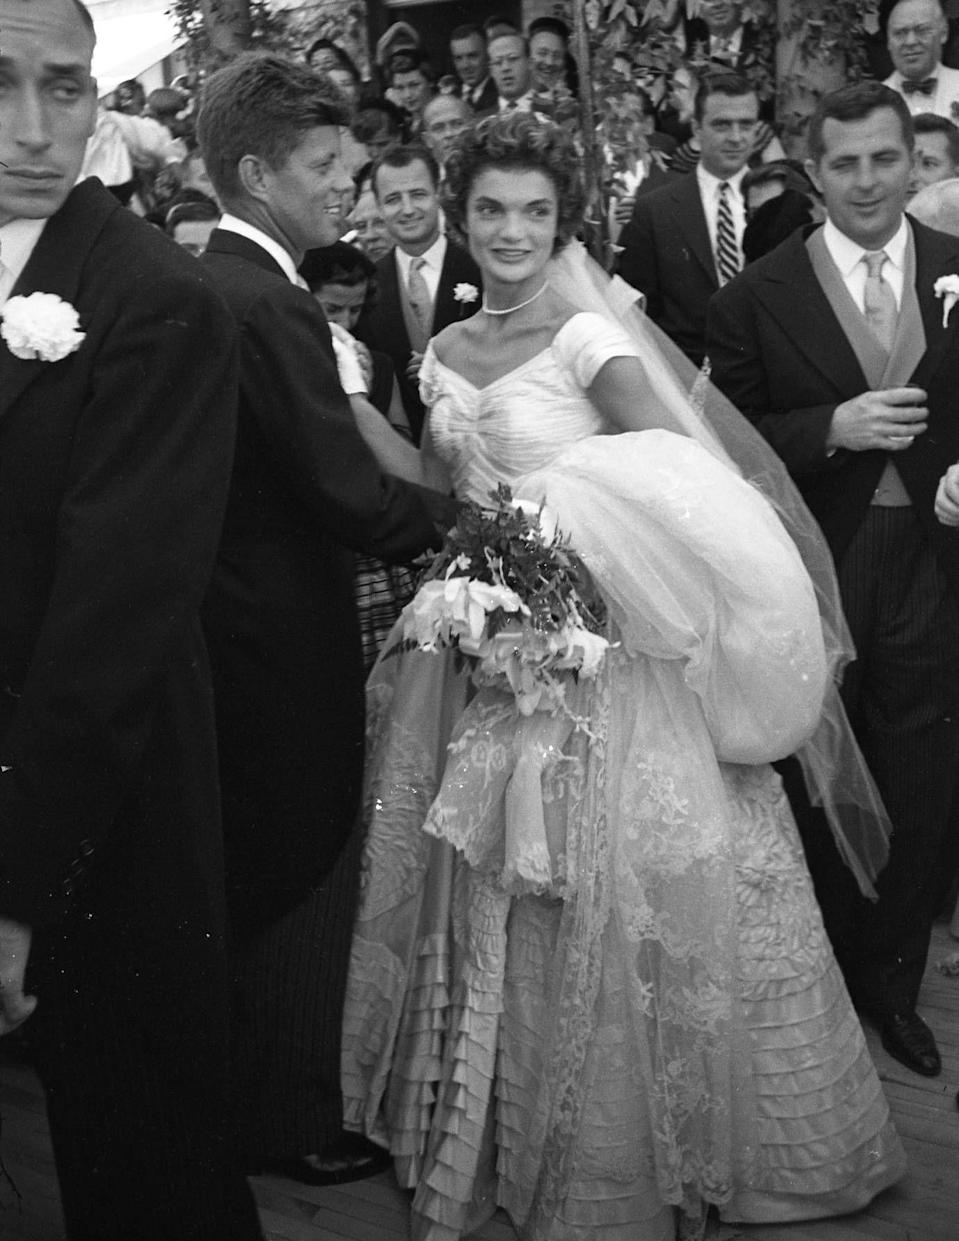 <p>There are few first couples that have left behind a legacy as indelible as John F. Kennedy and Jackie Lee Bouvier, and their Rhode Island nuptials on September 12, 1953 are the closest thing Americans have to a royal wedding. Here's a look at what it was like to be a guest at the historic event.<br></p>